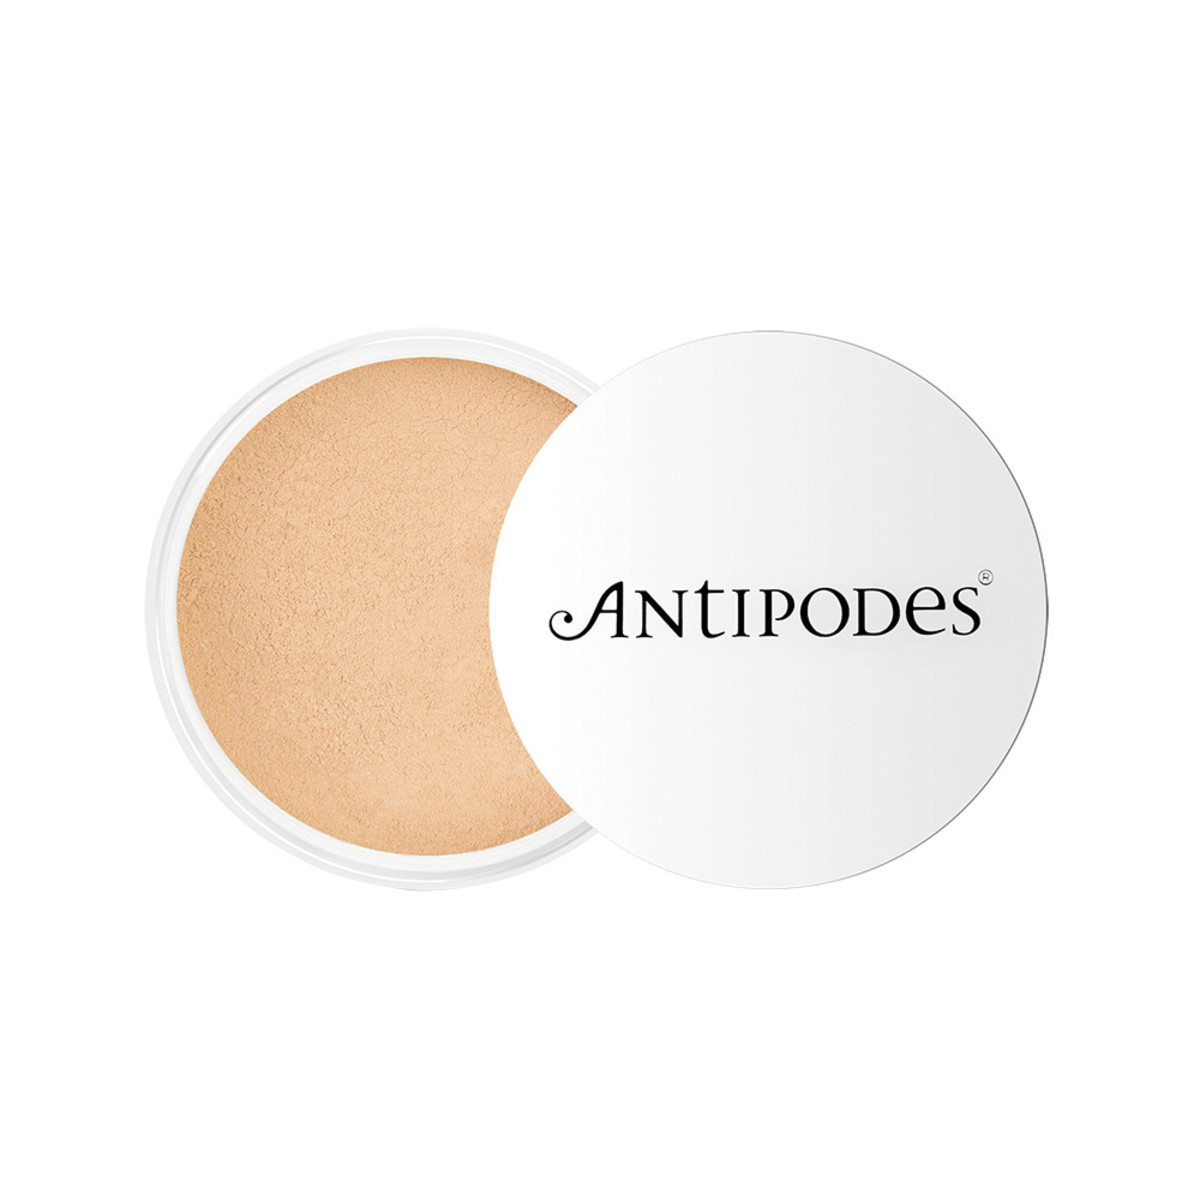 Antipodes Mineral Foundation Light Yellow 11g_media-01